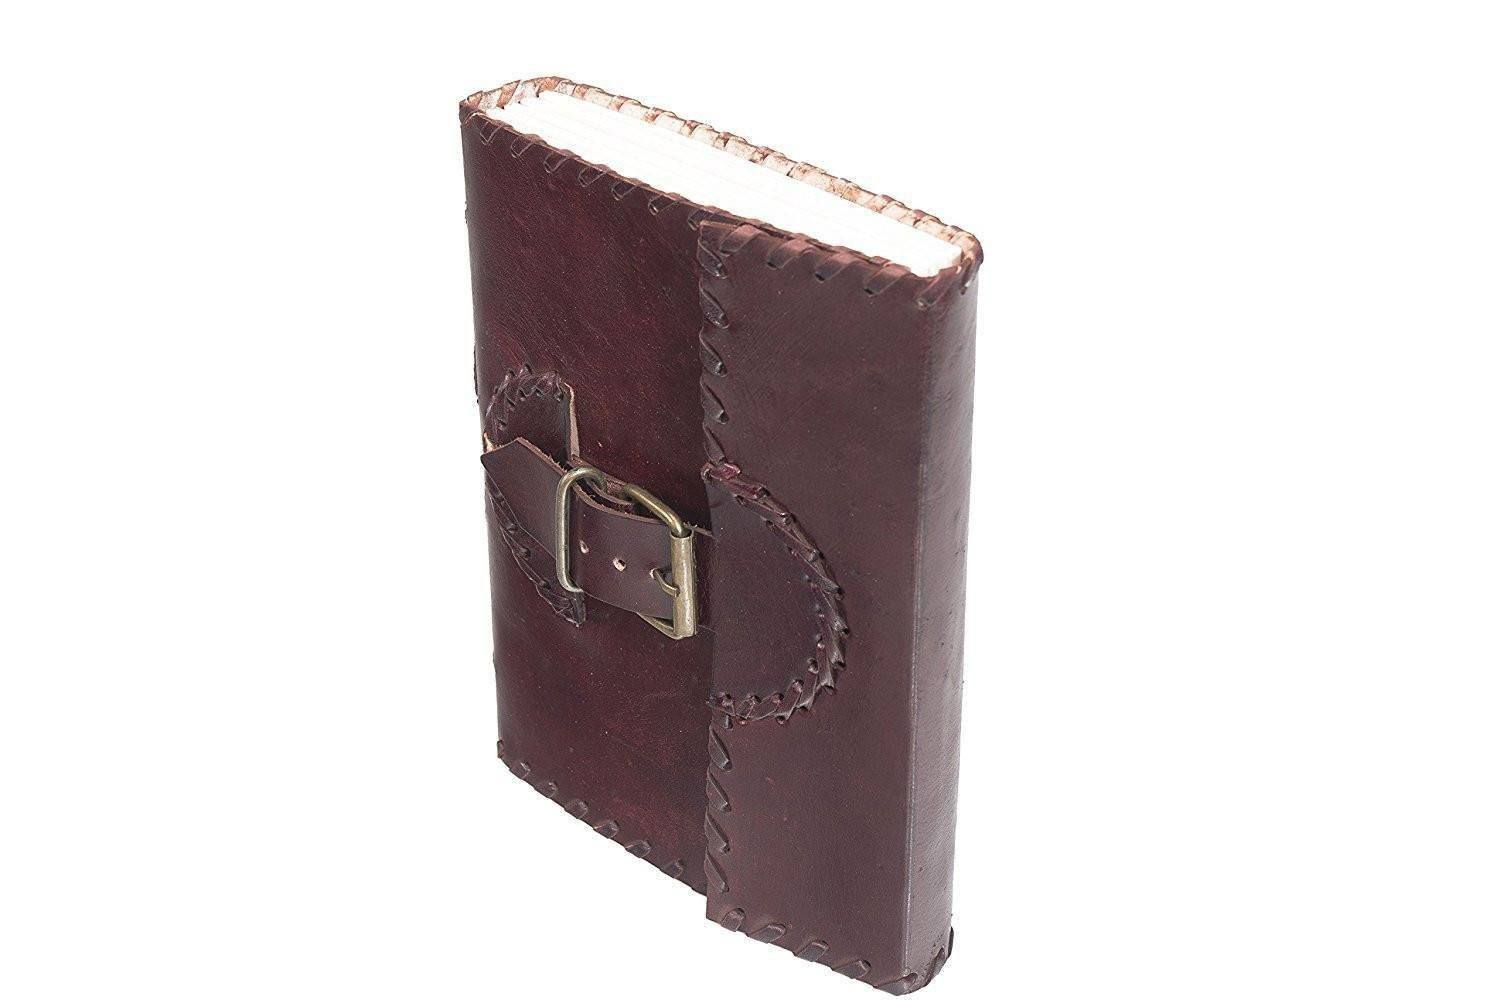 ININDIA Pure Genuine Real Vintage Leather Handmadepaper Notebook Diary For Office Home To Write Poem Daily Update - Brown Size Of 8*6